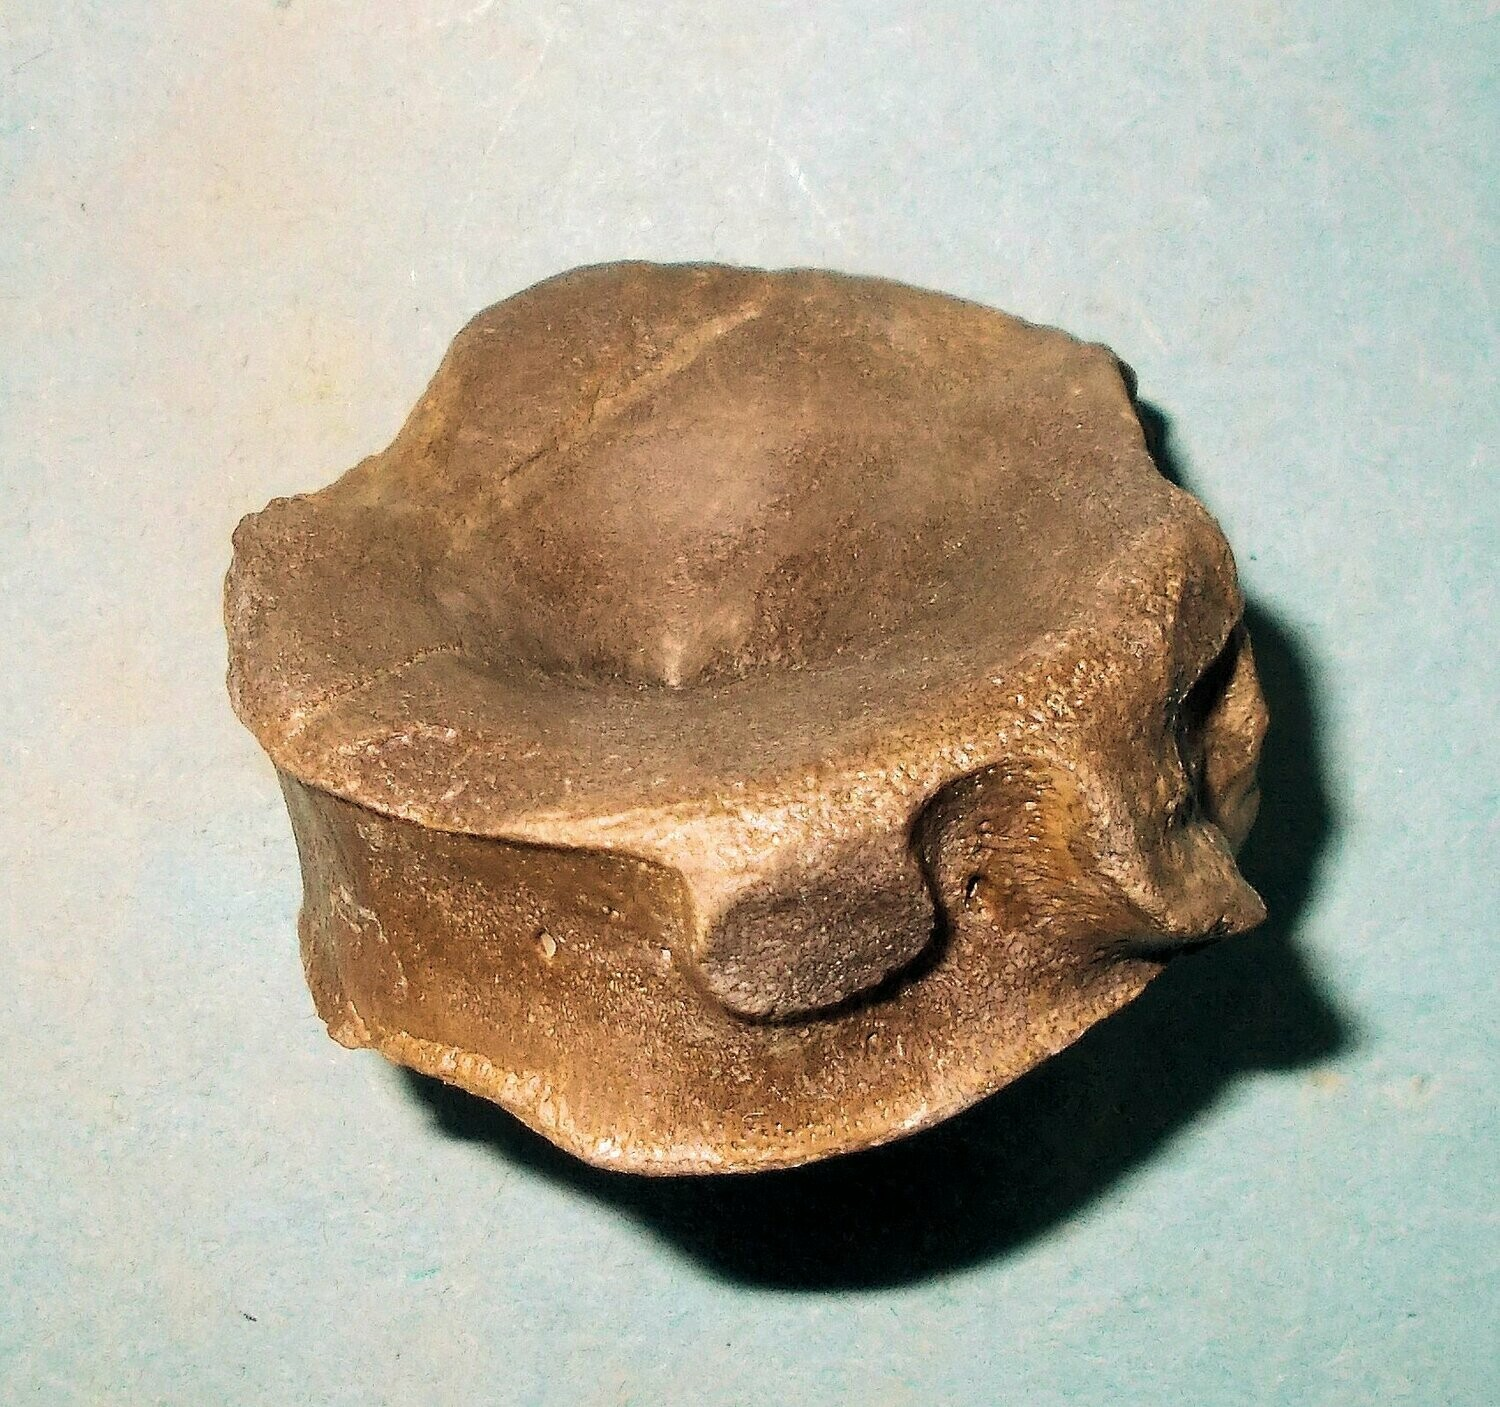 Fine 5cm diameter Ichthyosaur vertebra with excellent detail: Lower Jurassic, Orton, Peterborough, UK